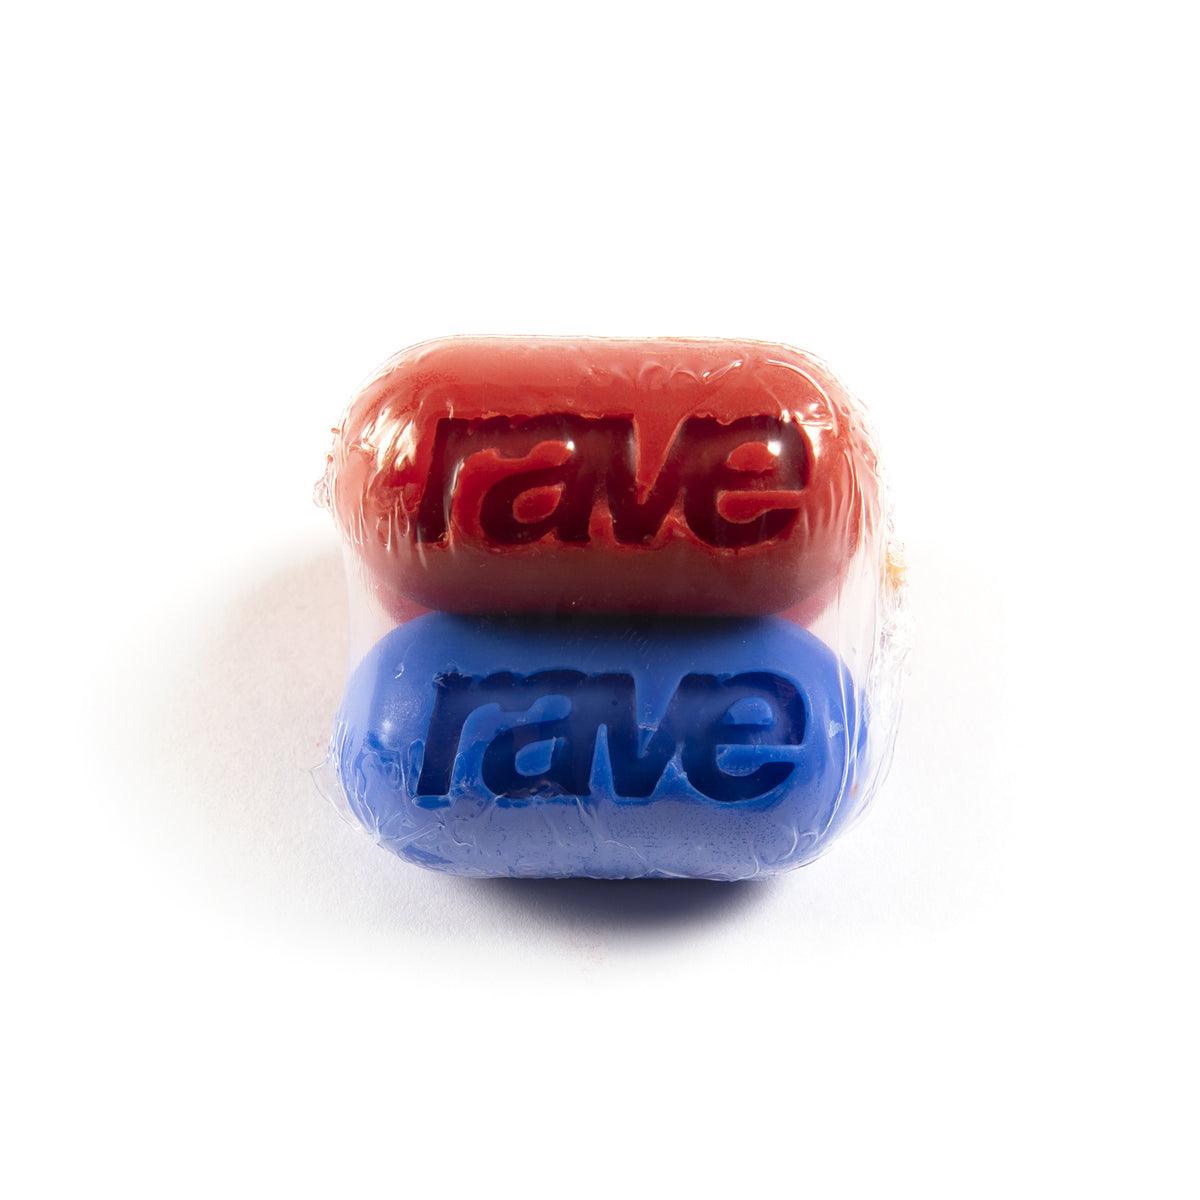 RAVE PILLS wax - RAVE skateboards